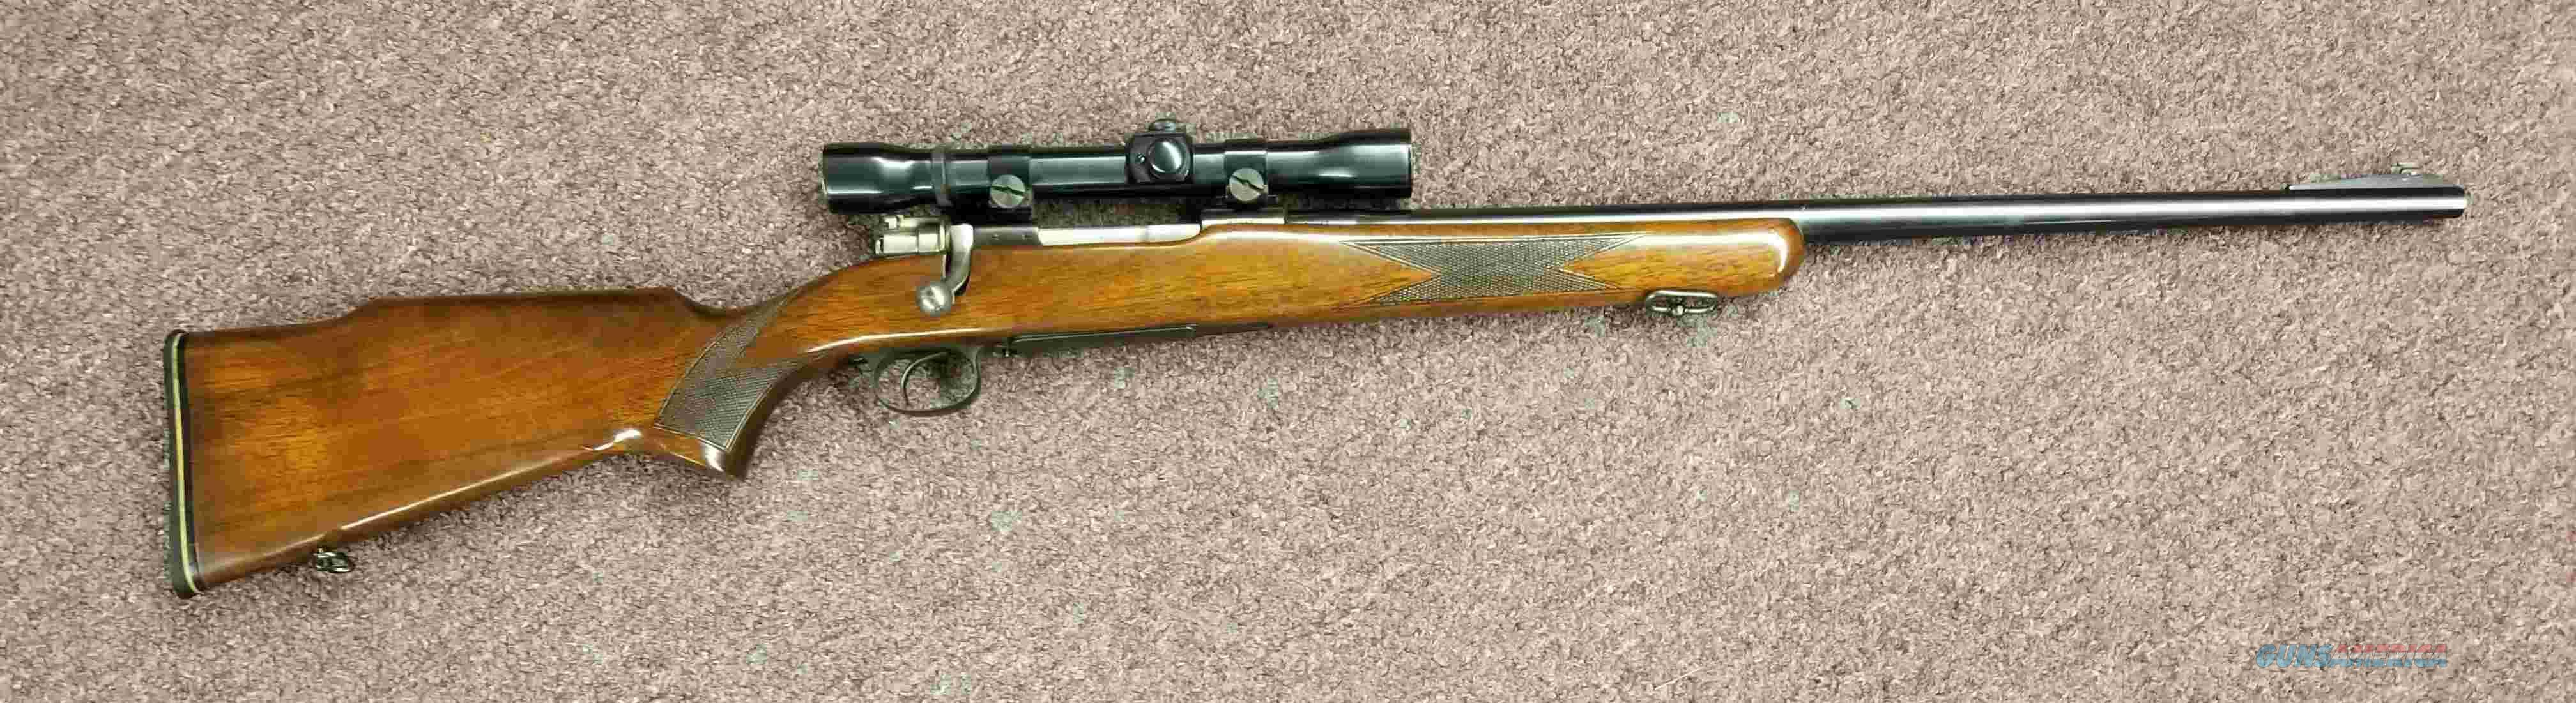 FN Mauser Sporter 270 - Vintage Optics - Free Shipping !!!    Guns > Rifles > FNH - Fabrique Nationale (FN) Rifles > Bolt action > Hunting